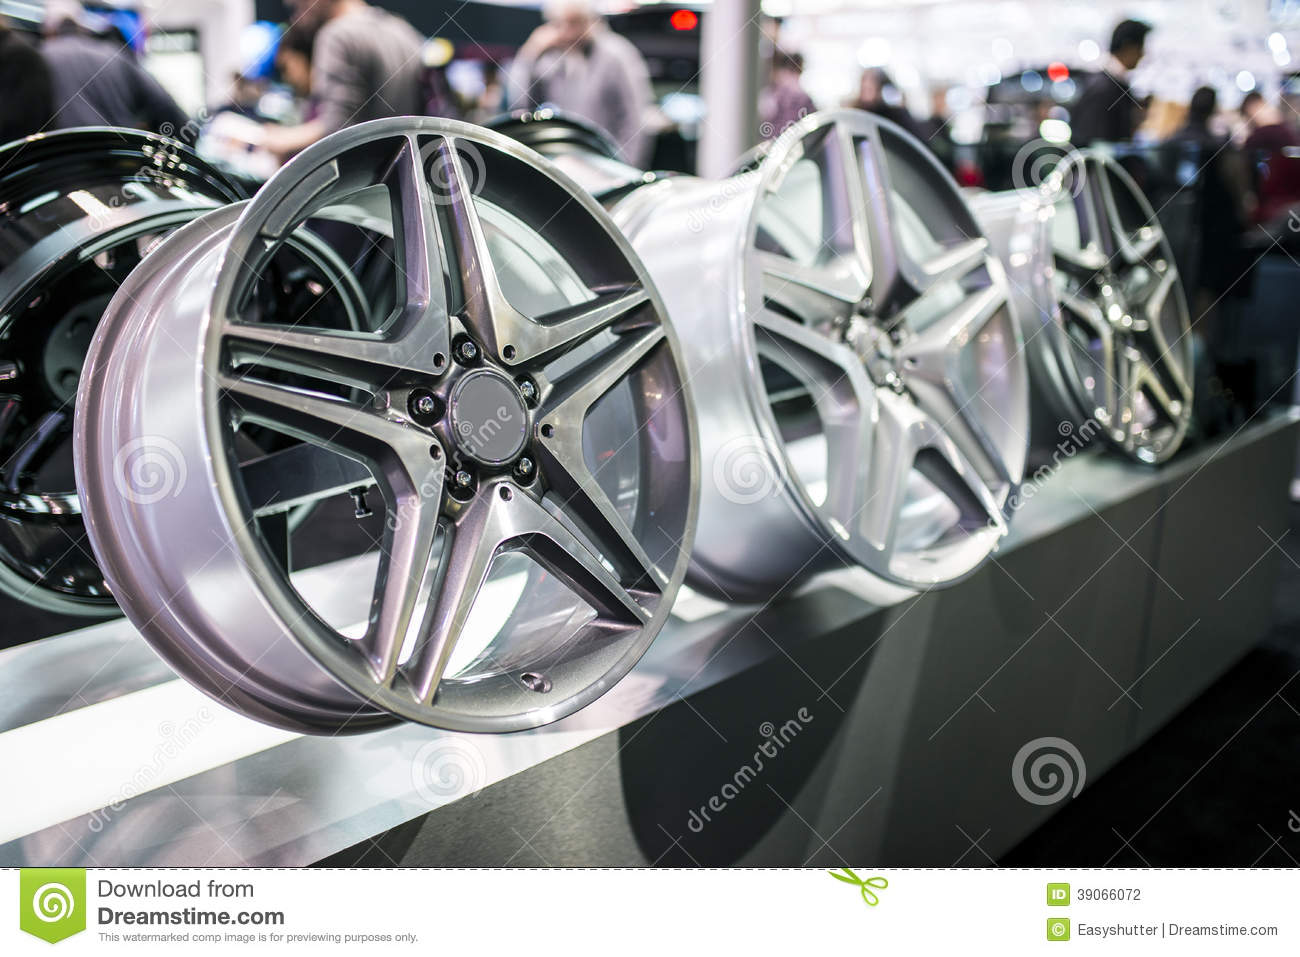 Rims In Toronto Car Show Stock Photo Image Of Tire Show - Show rims on car before you buy